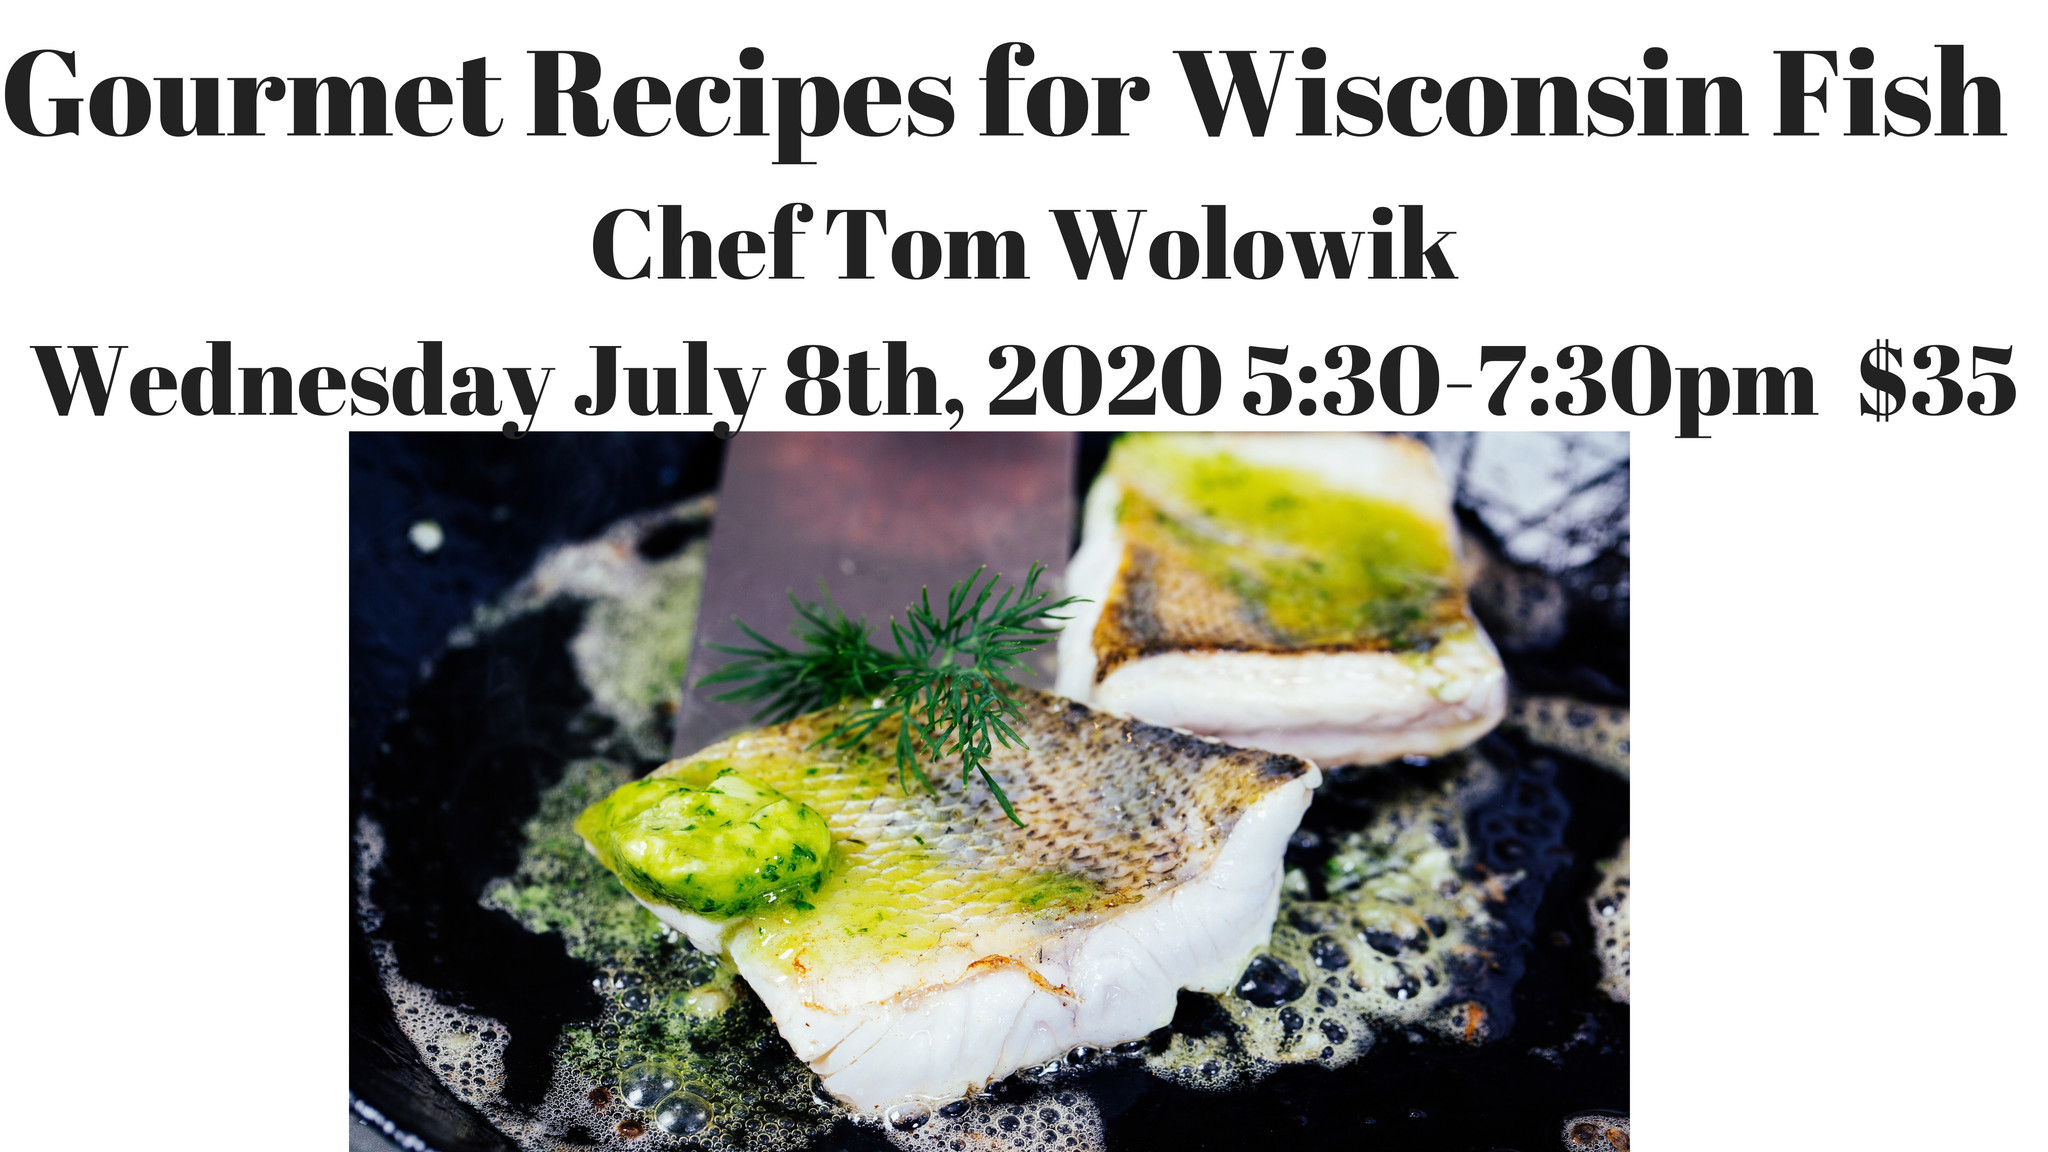 Gourmet Recipes for Cooking with Wisconsin Fish